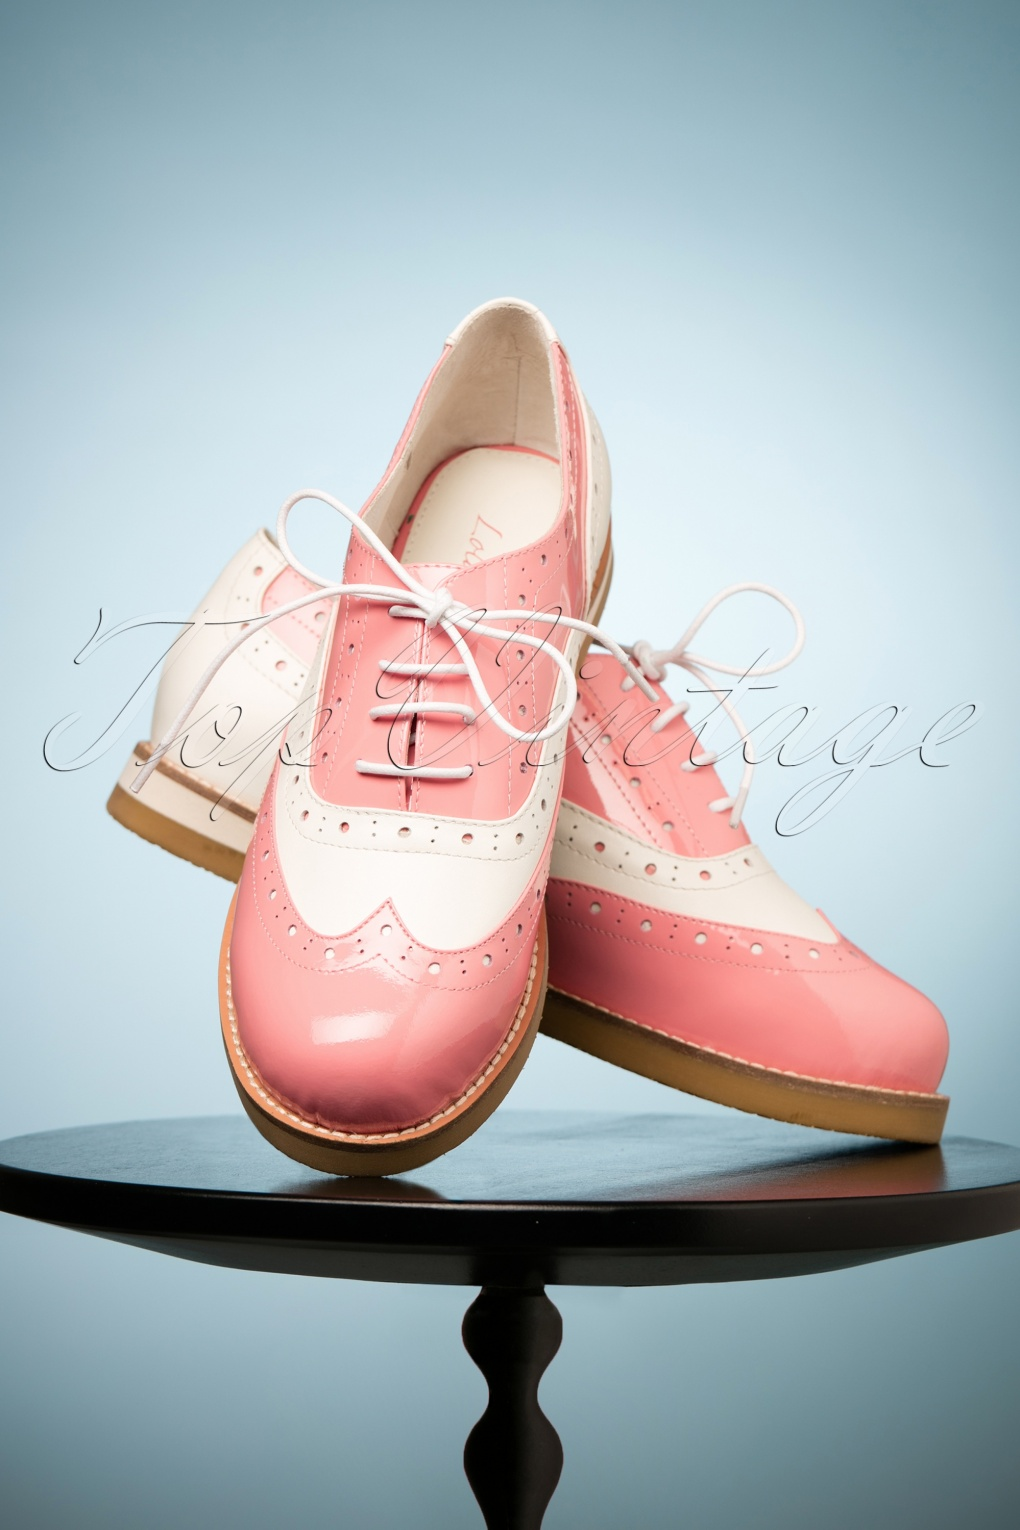 Vintage Style Shoes, Vintage Inspired Shoes 50s Cecilia Candy Patent Brogues in Pink and Cream £123.51 AT vintagedancer.com